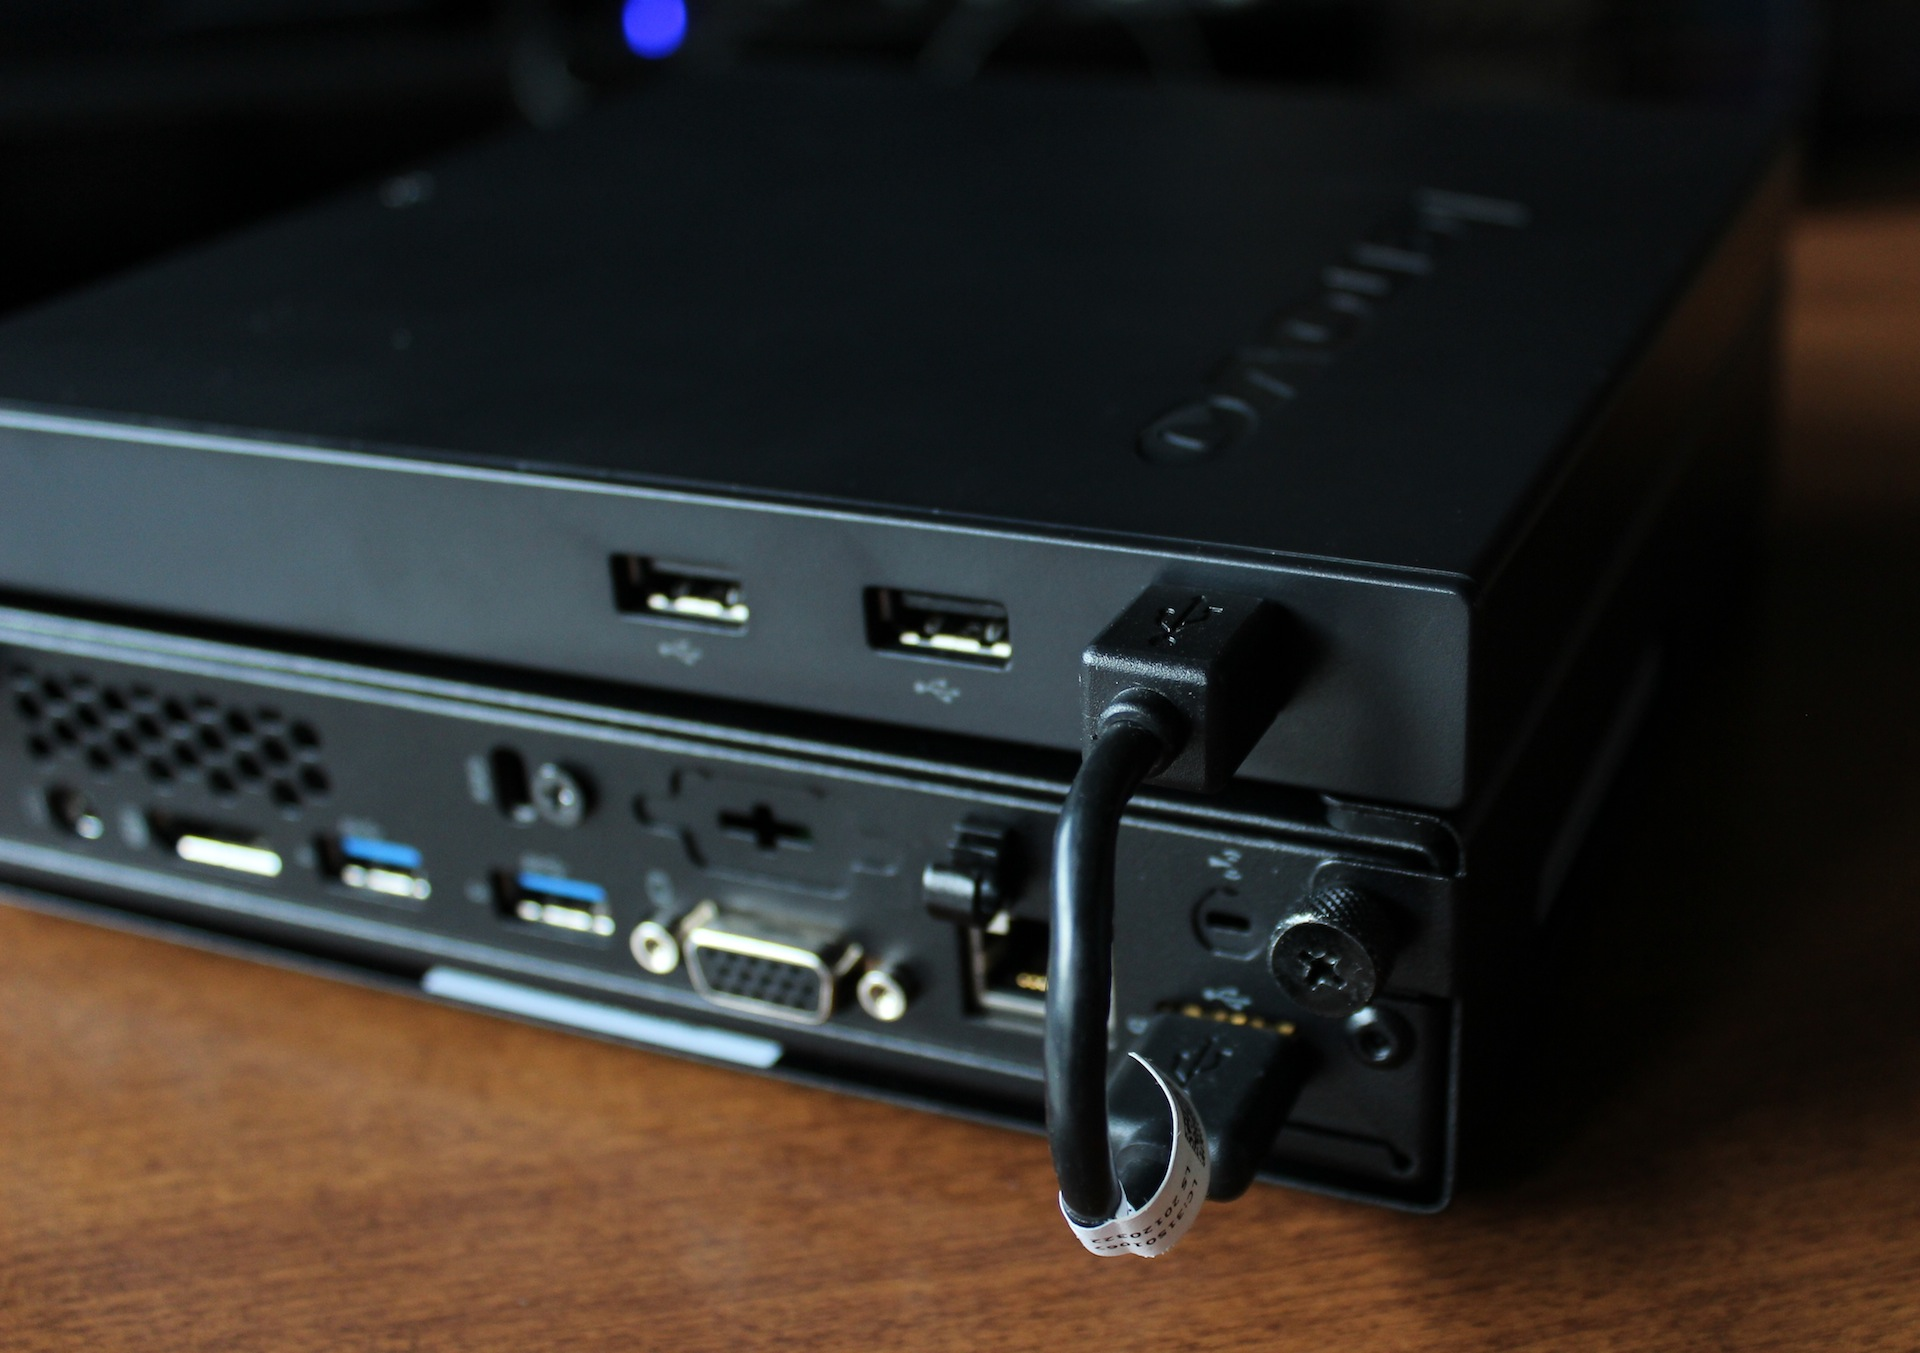 Review: Ivy Bridge brings big performance to tiny Lenovo ThinkCentre